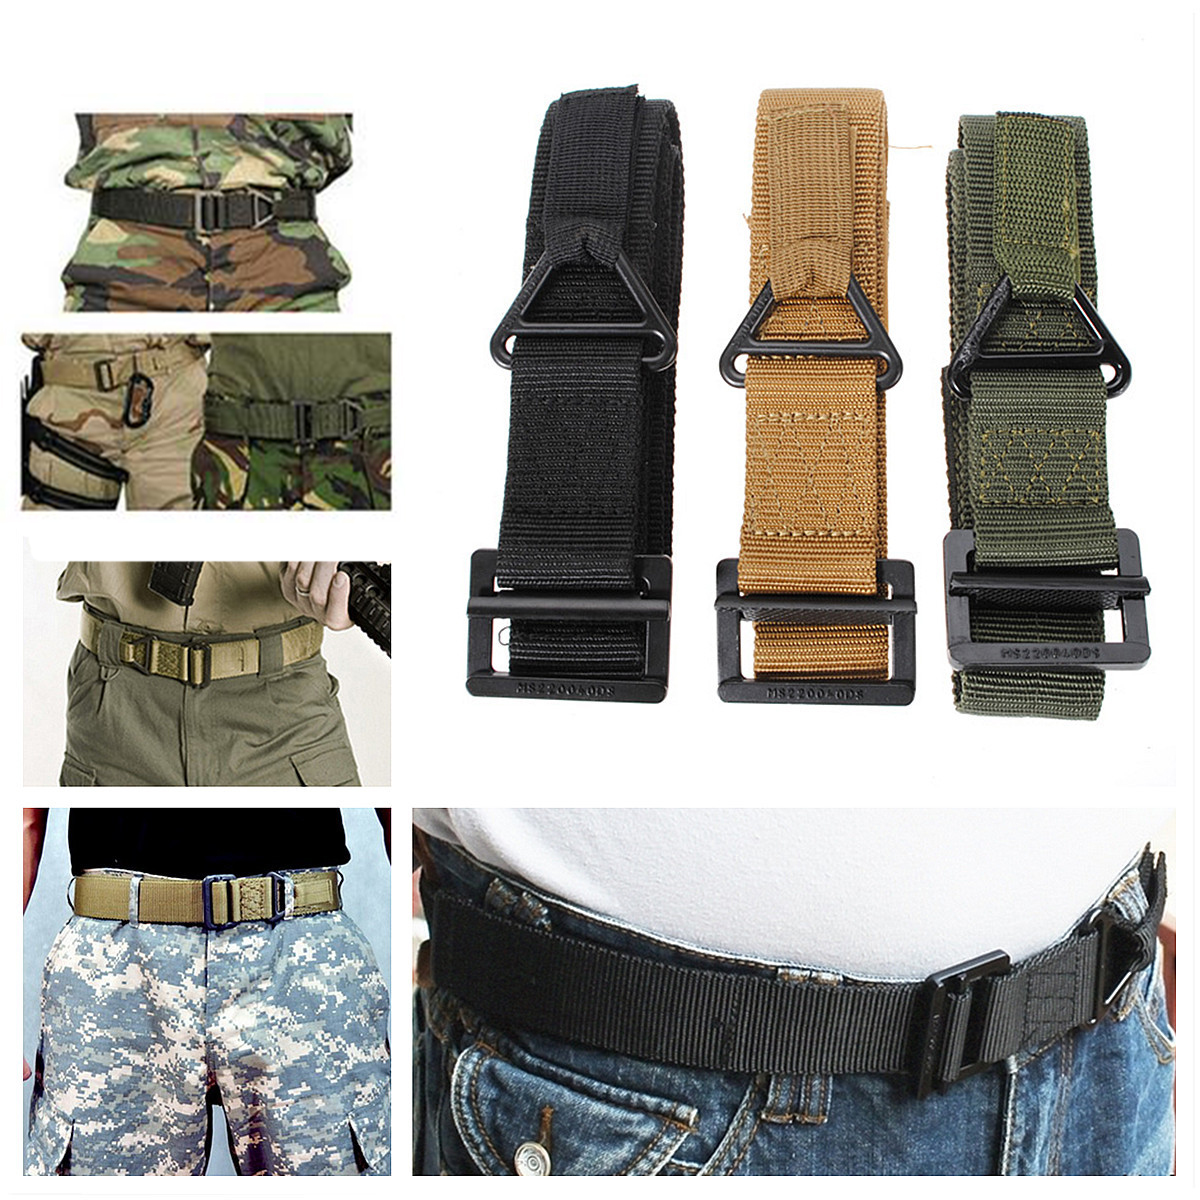 Survival Tactical Waist Belt Strap Military Emergency Rescue Protection Waistband For Hunting цена 2017